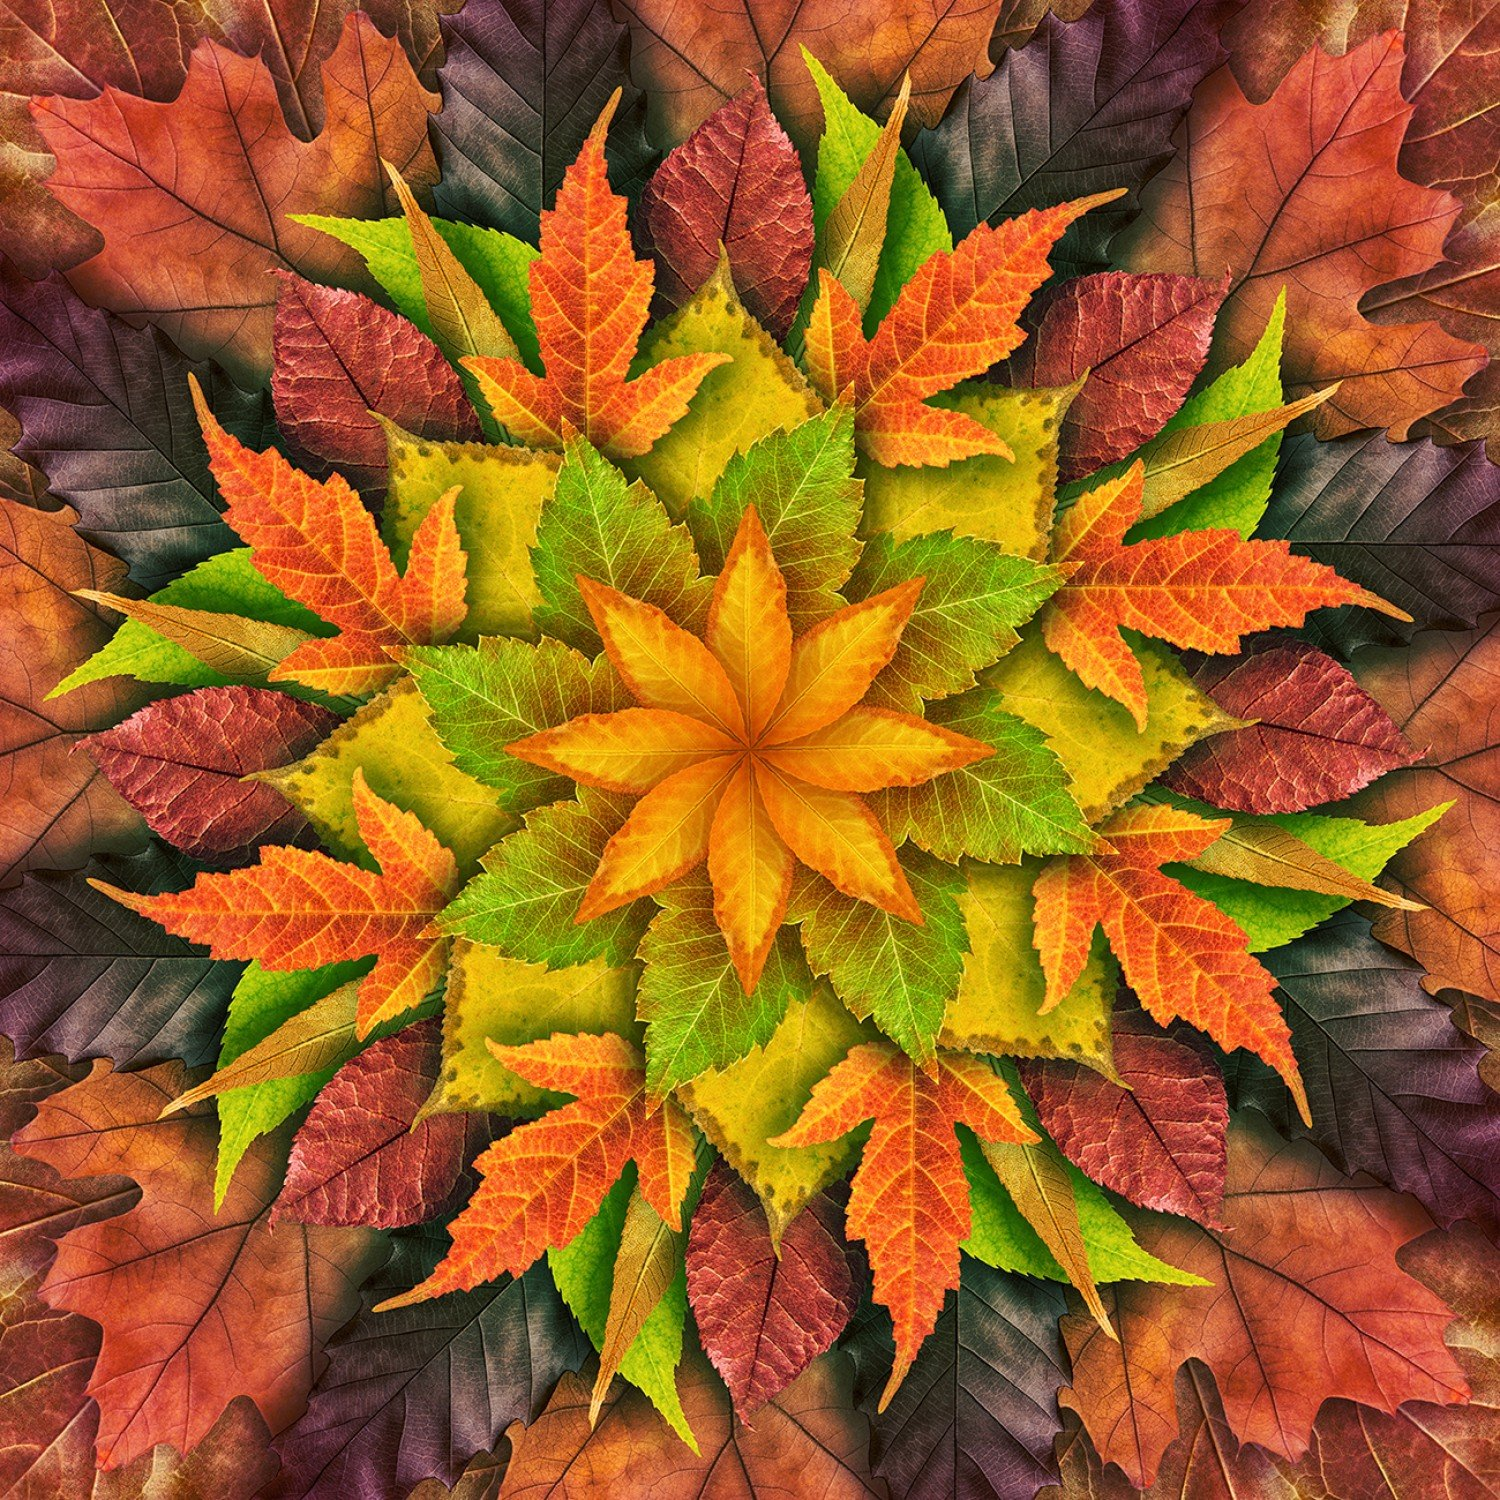 Autumn Dream Big Leaf Digital Panel 43in x 43in